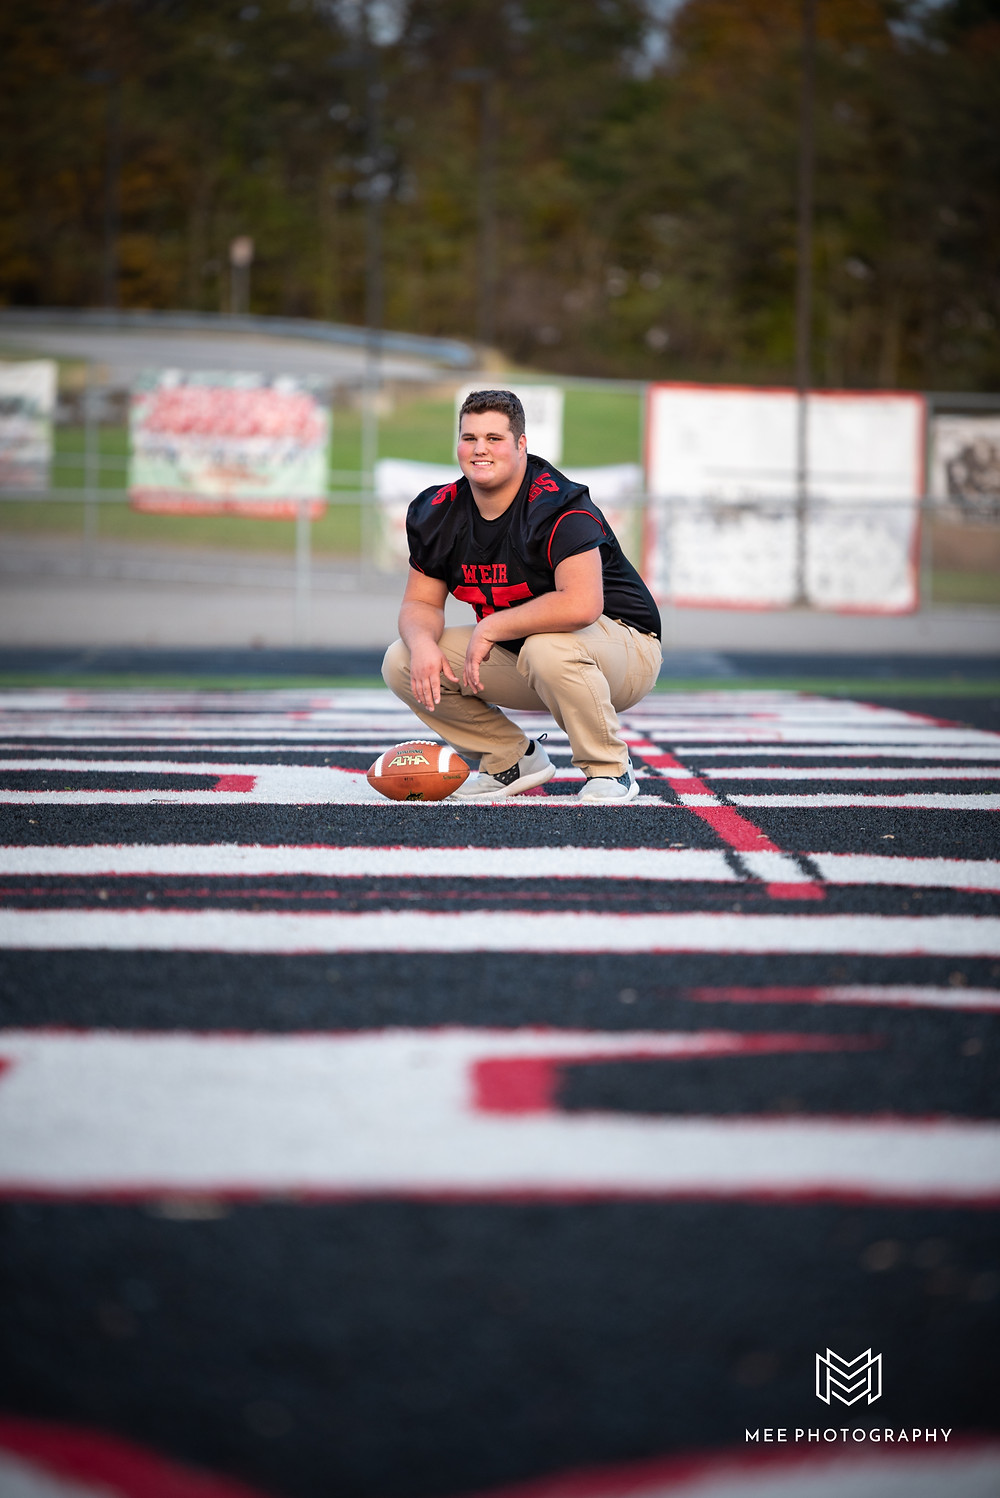 Senior guy crouching in the end zone of the football field during his senior photos at Weirton High School in West Virginia